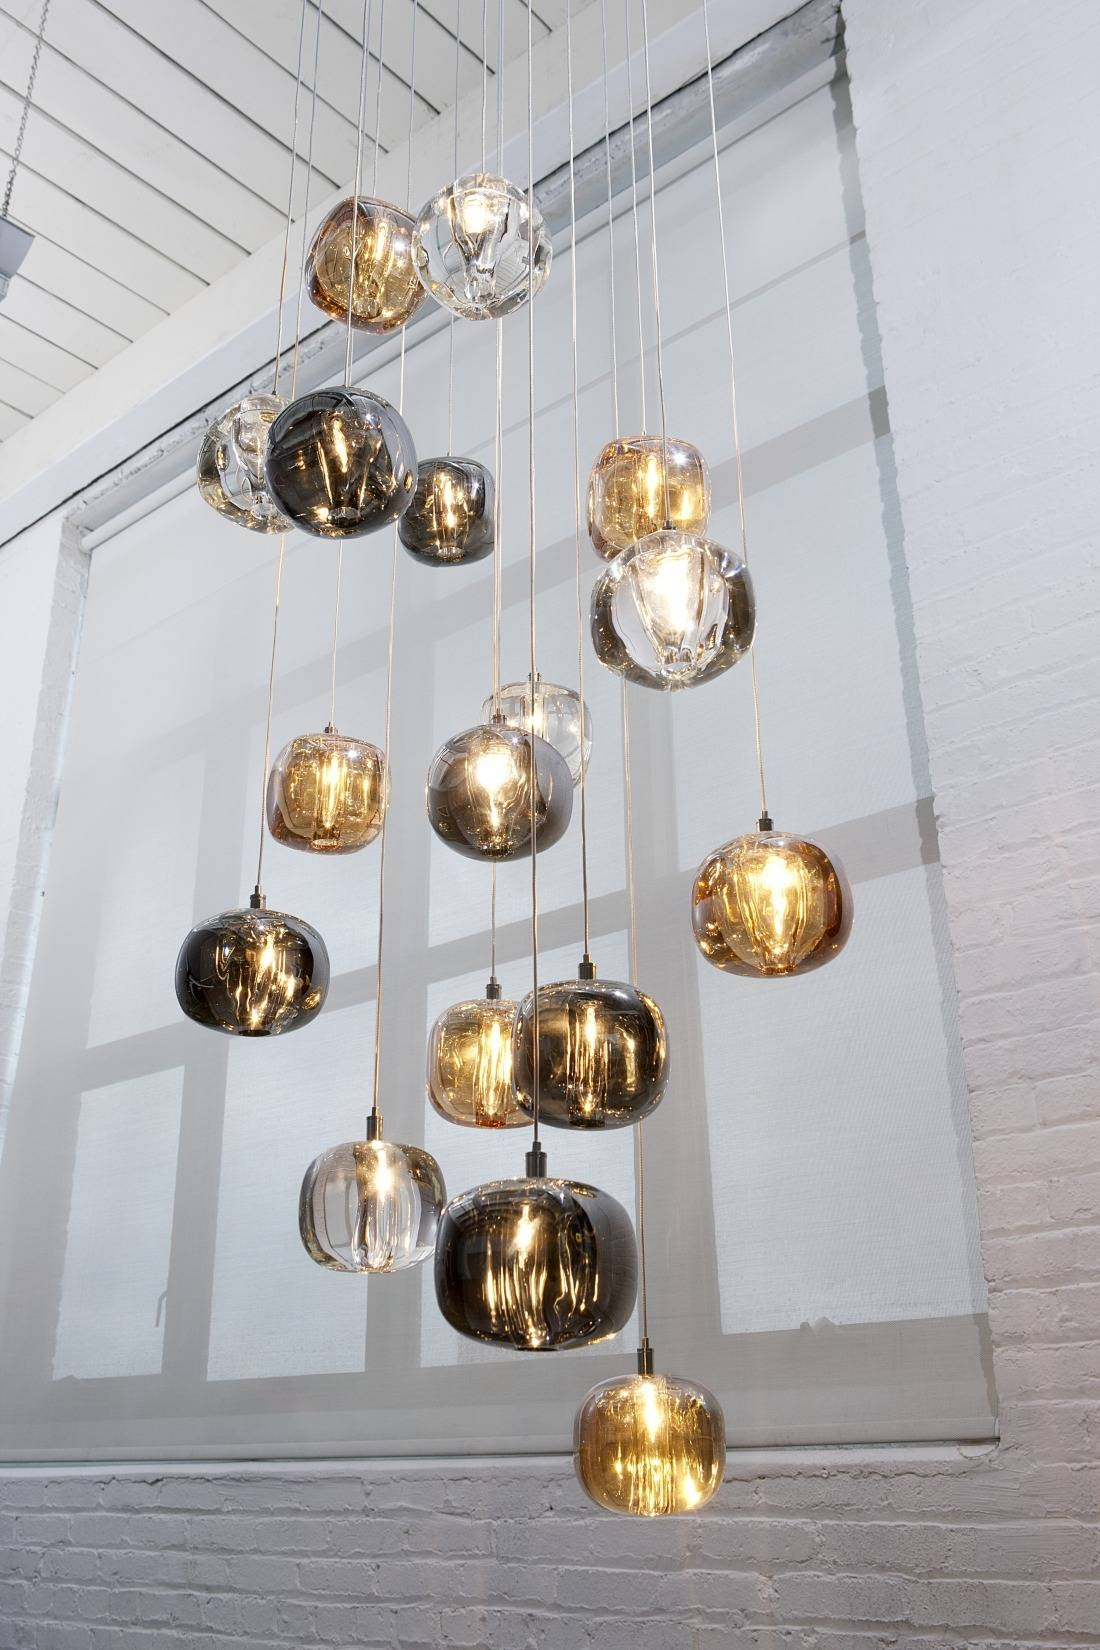 Cubie Pendant Light Lightplan » Archipro regarding Bolio Pendant Lights (Image 13 of 15)